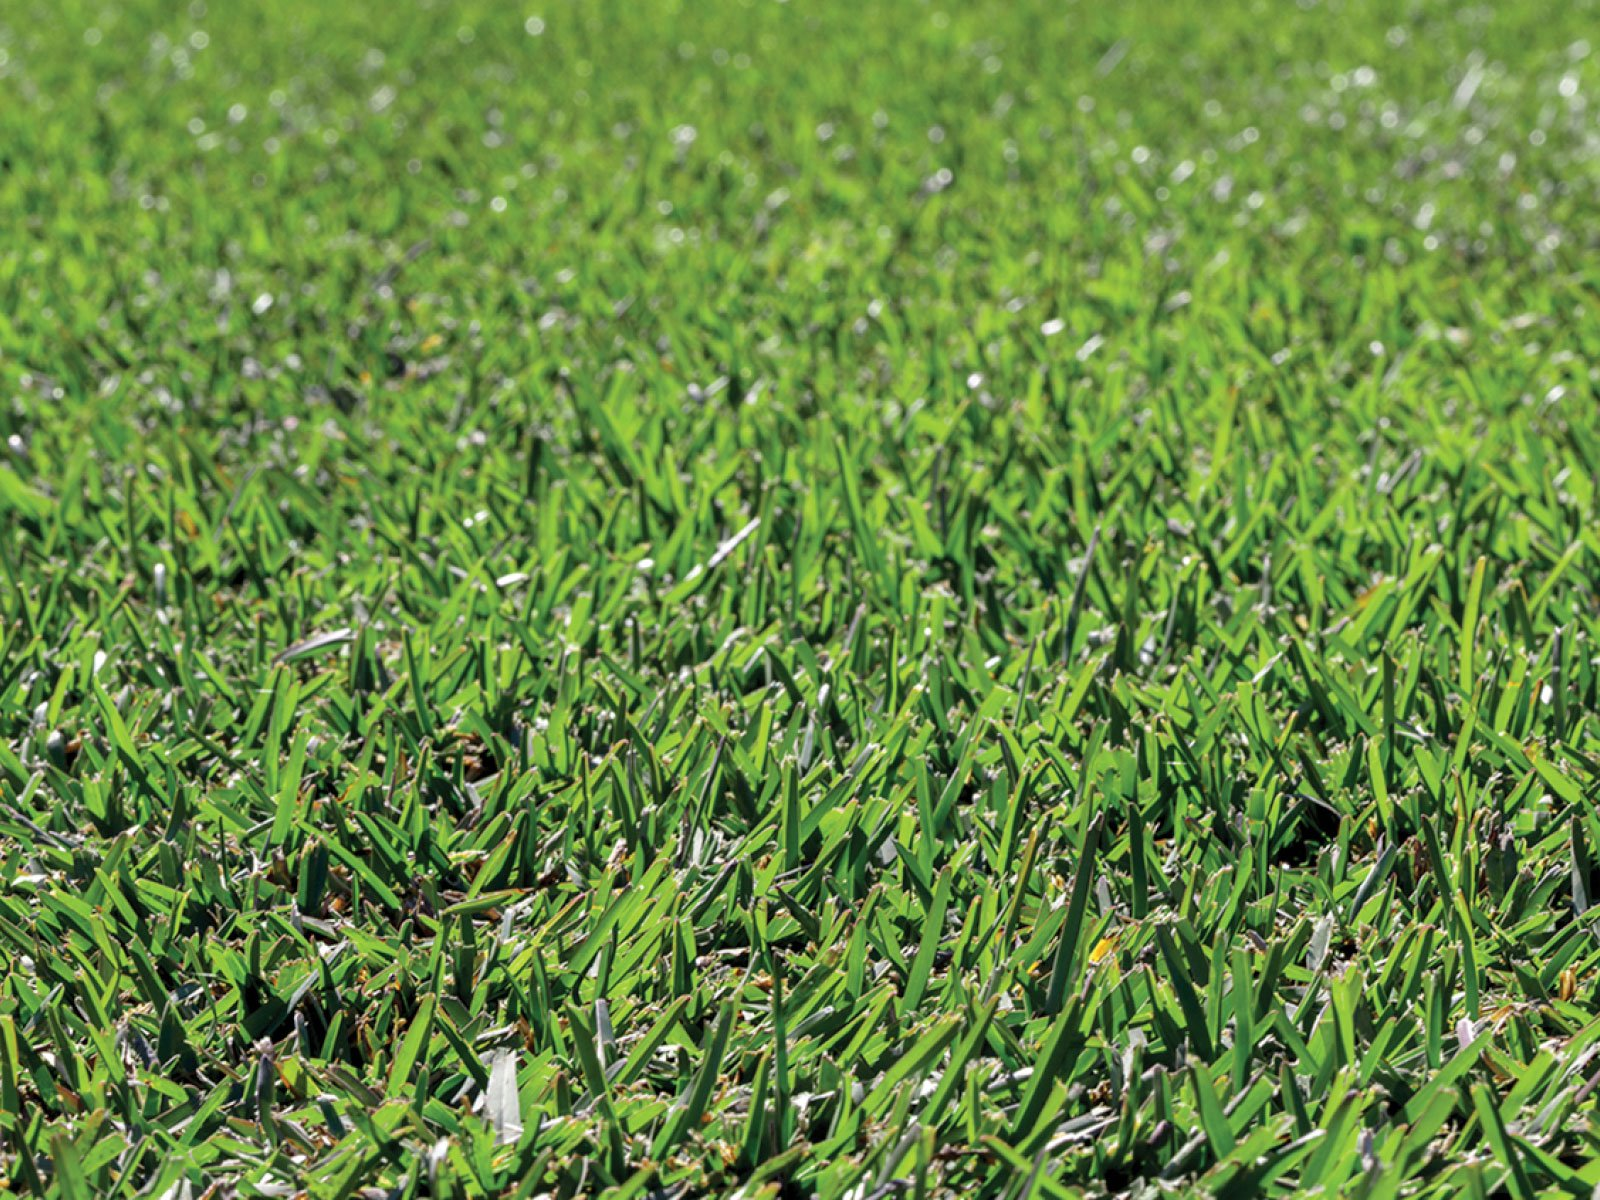 Dangers of Mowing Buffalo Grass Too Short